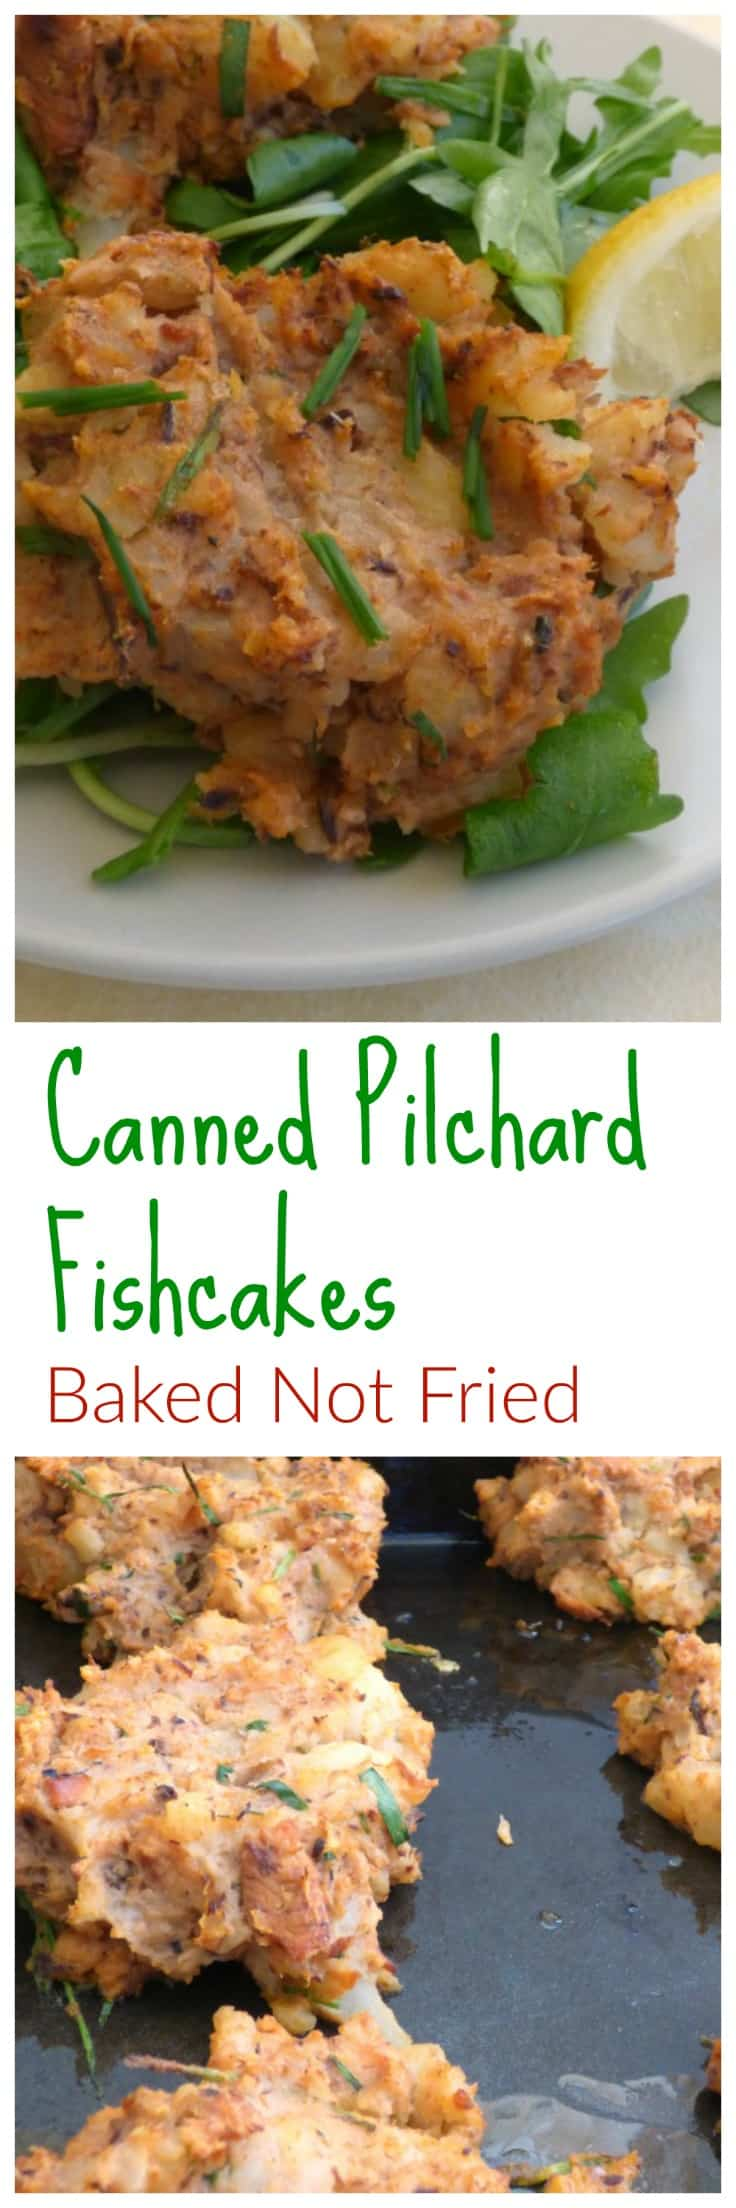 Canned Pilchard Fishcakes - Baked Not Fried Collage showing baking tray and plated fishcakes with salad and lemon wedges